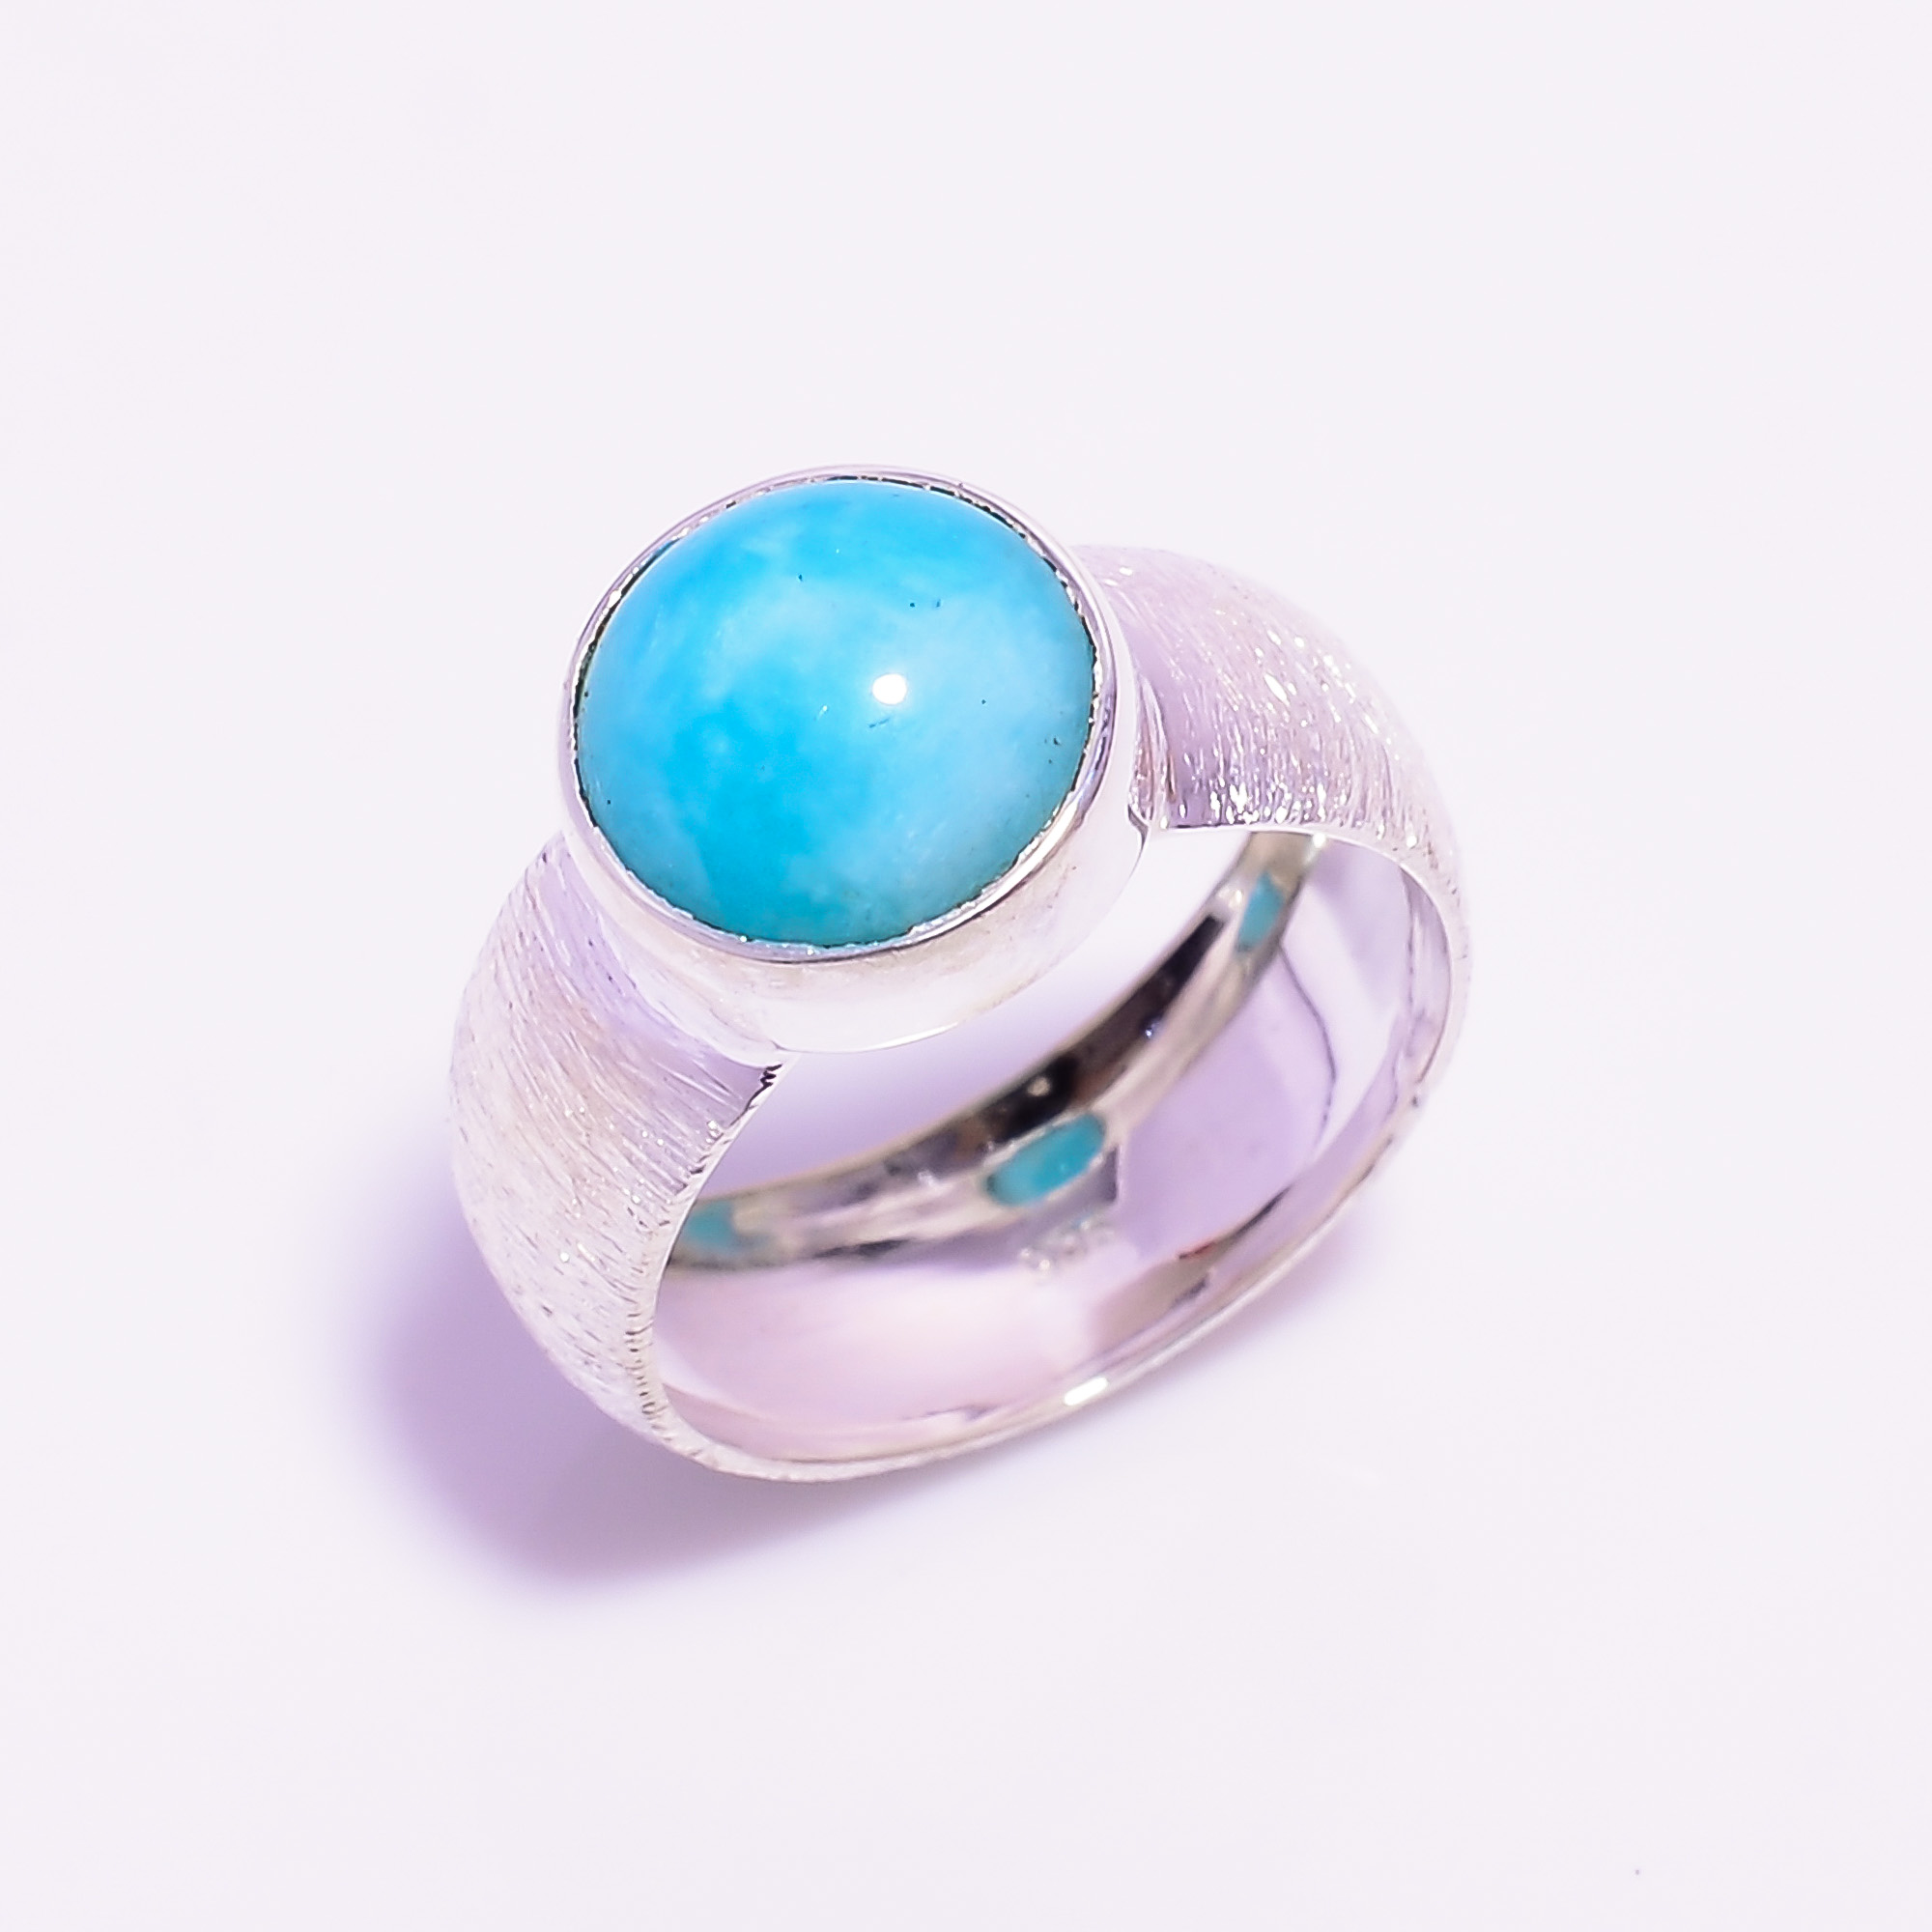 Amazonite Gemstone 925 Sterling Silver Ring Size US 6.75